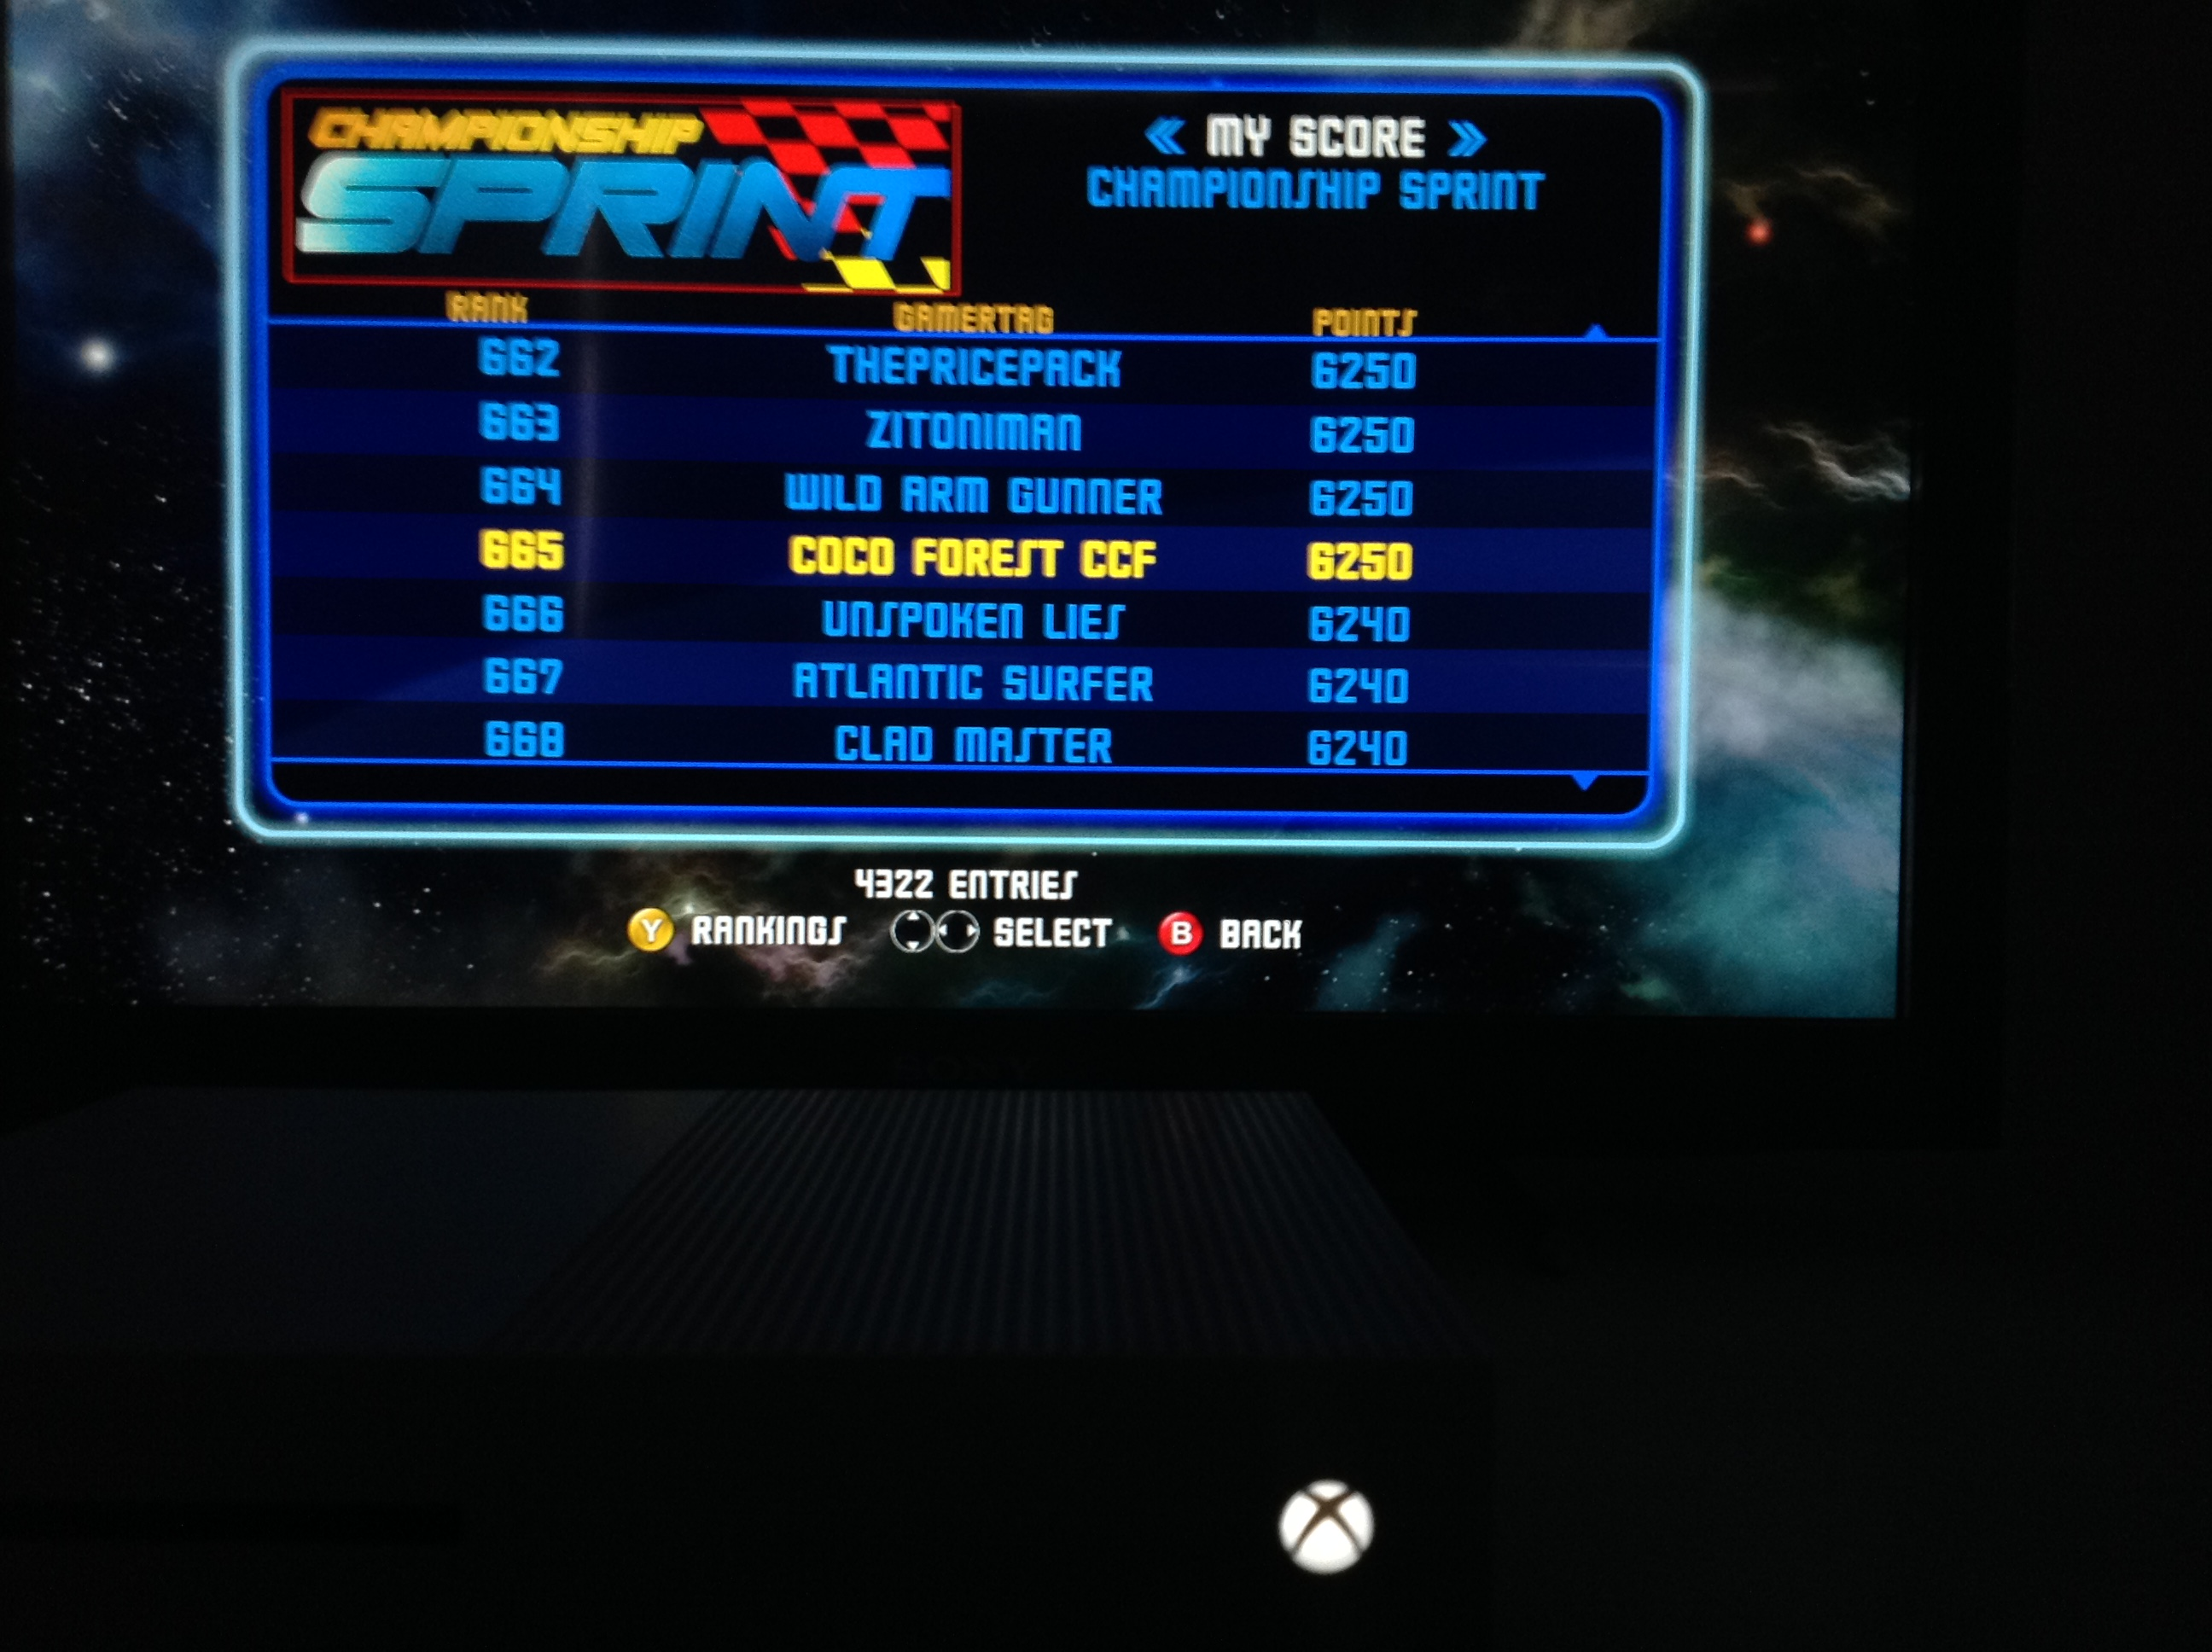 CoCoForest: Midway Arcade Origins: Championship Sprint (Xbox 360) 6,250 points on 2019-05-26 14:28:33